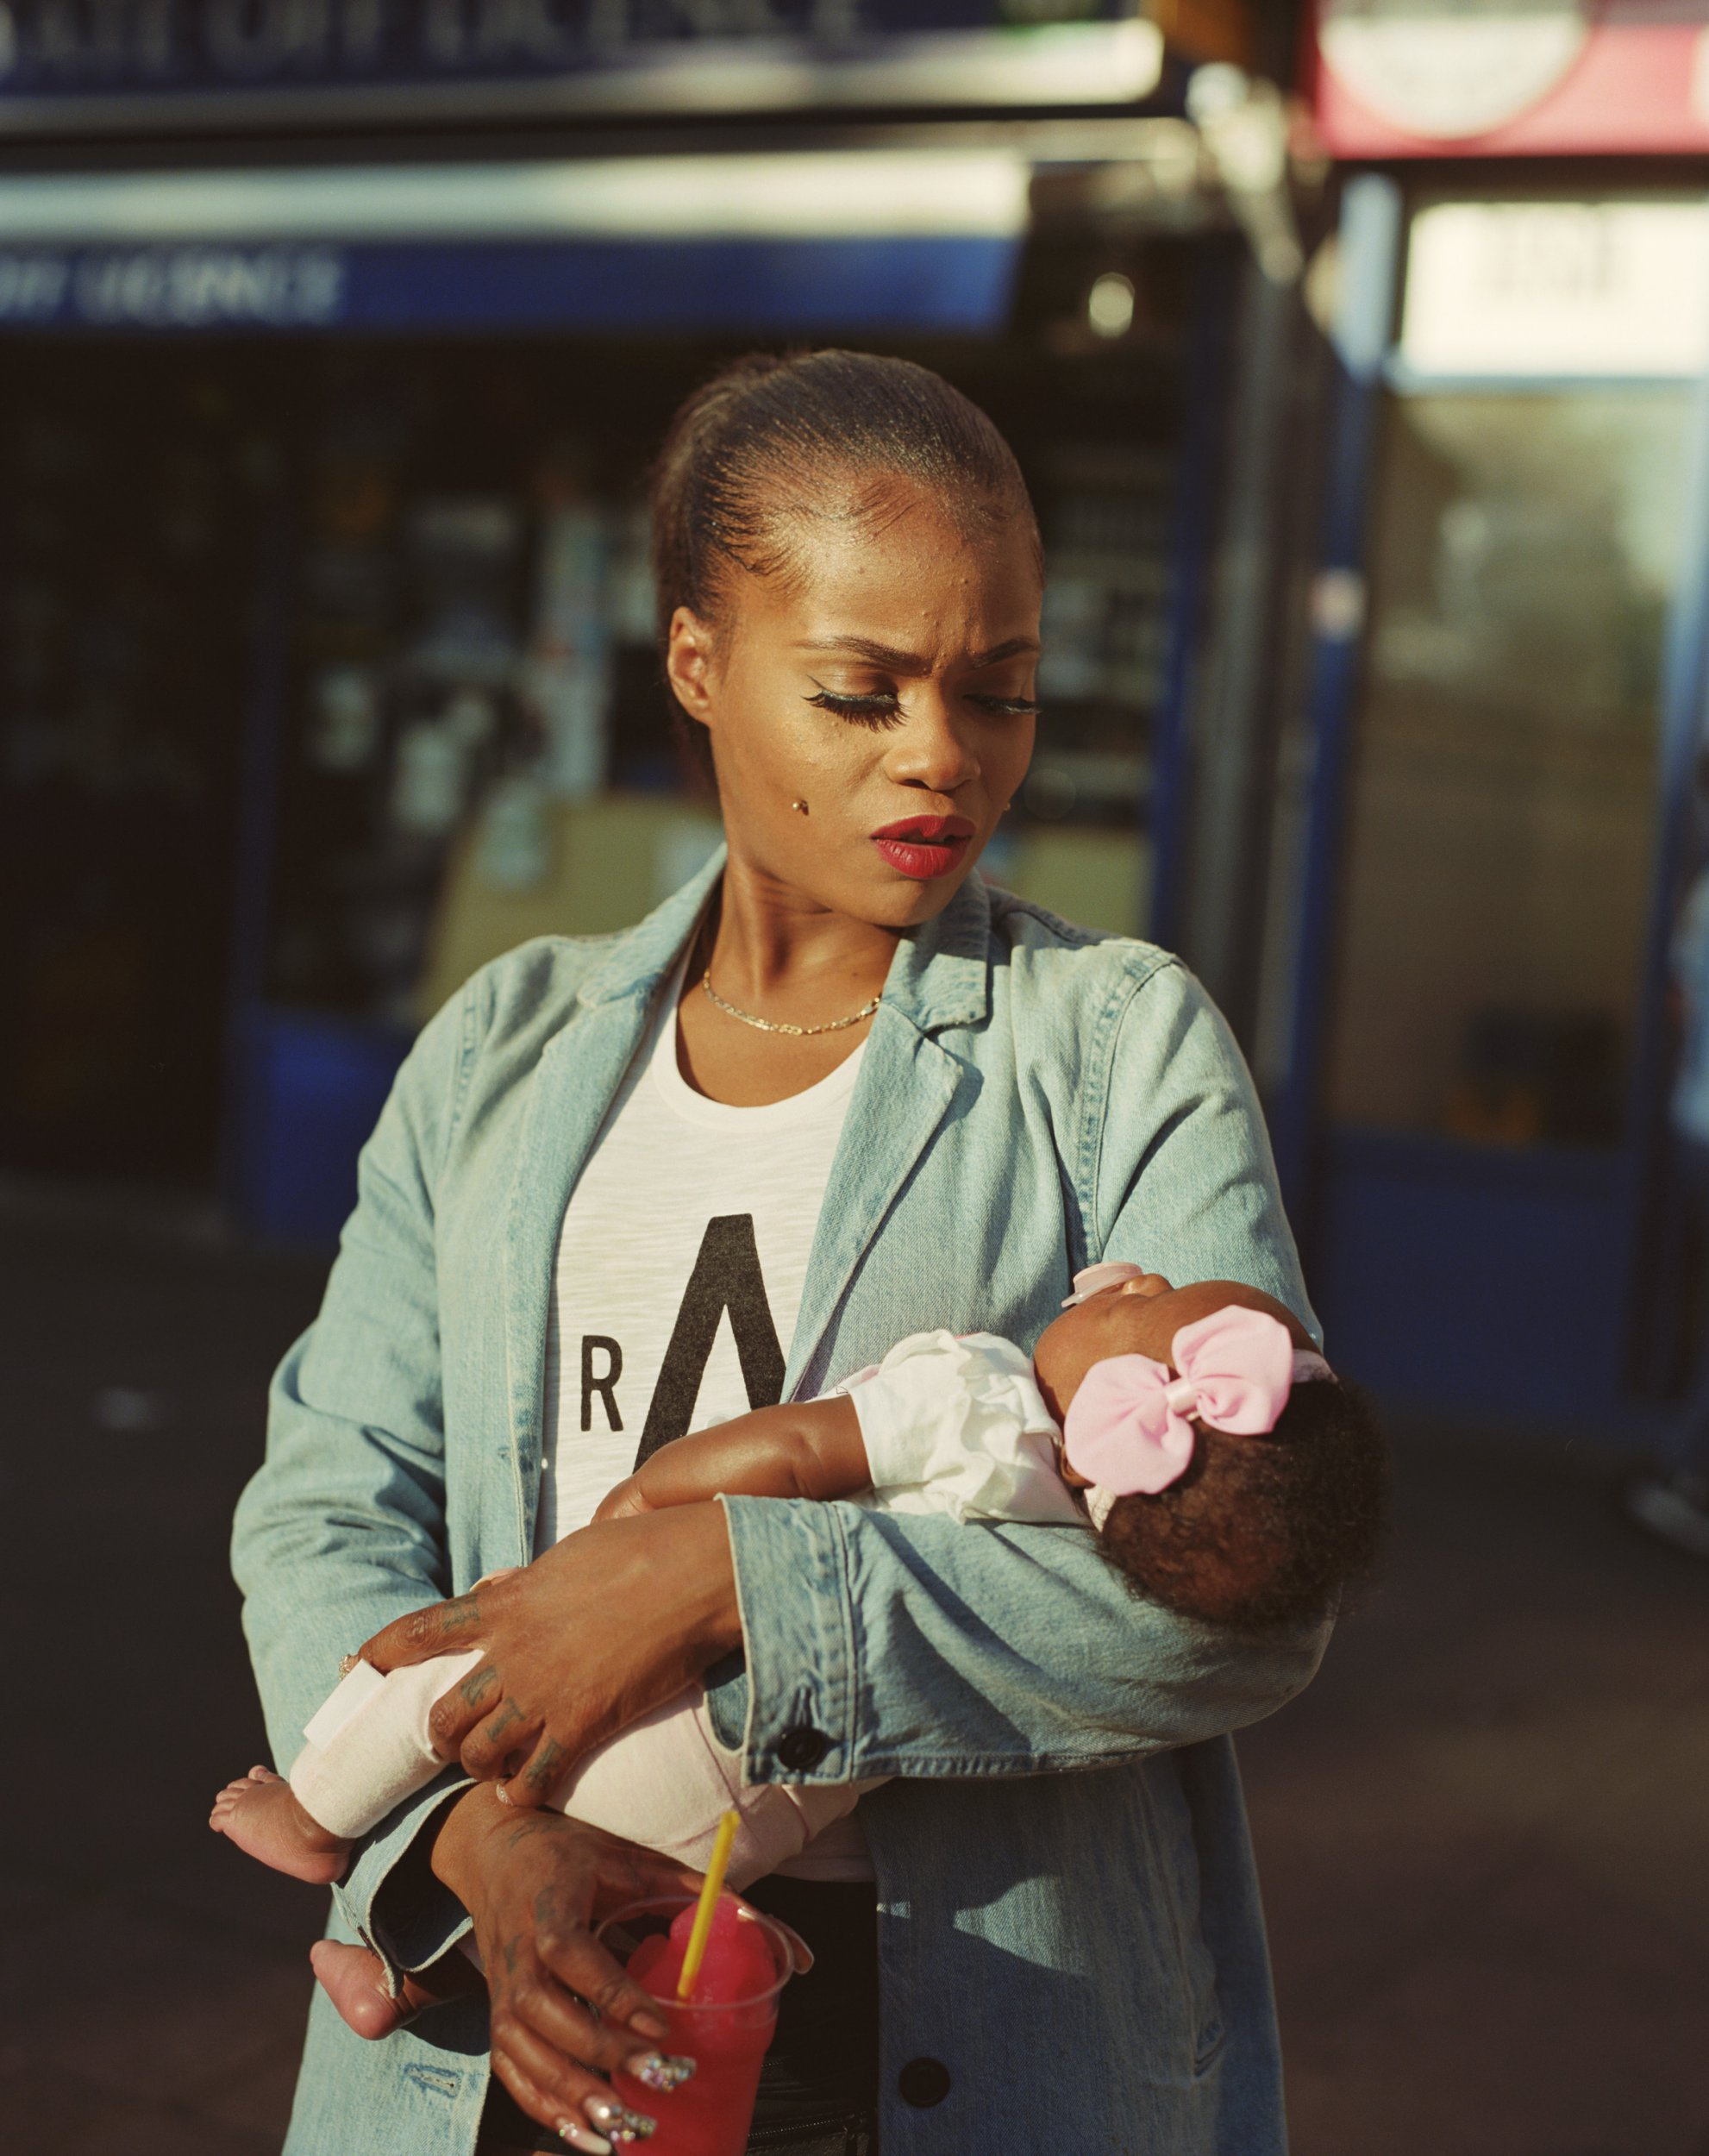 Undated handout photo issued by the National Portrait Gallery of Cybil McAddy with daughter Lulu from the series Clapton Blossom by Enda Bowe, which has been shortlisted for the annual Taylor Wessing Photographic Portrait Prize. PRESS ASSOCIATION Photo. Issue date: Thursday August 30, 2018. The portraits were selected from 4,462 submissions from 70 countries and more than 50 portraits will go on display. The winner will be announced on October 16. See PA story ARTS Portrait. Photo credit should read: Enda Bowe/PA Wire NOTE TO EDITORS: This handout photo may only be used in for editorial reporting purposes for the contemporaneous illustration of events, things or the people in the image or facts mentioned in the caption. Reuse of the picture may require further permission from the copyright holder.